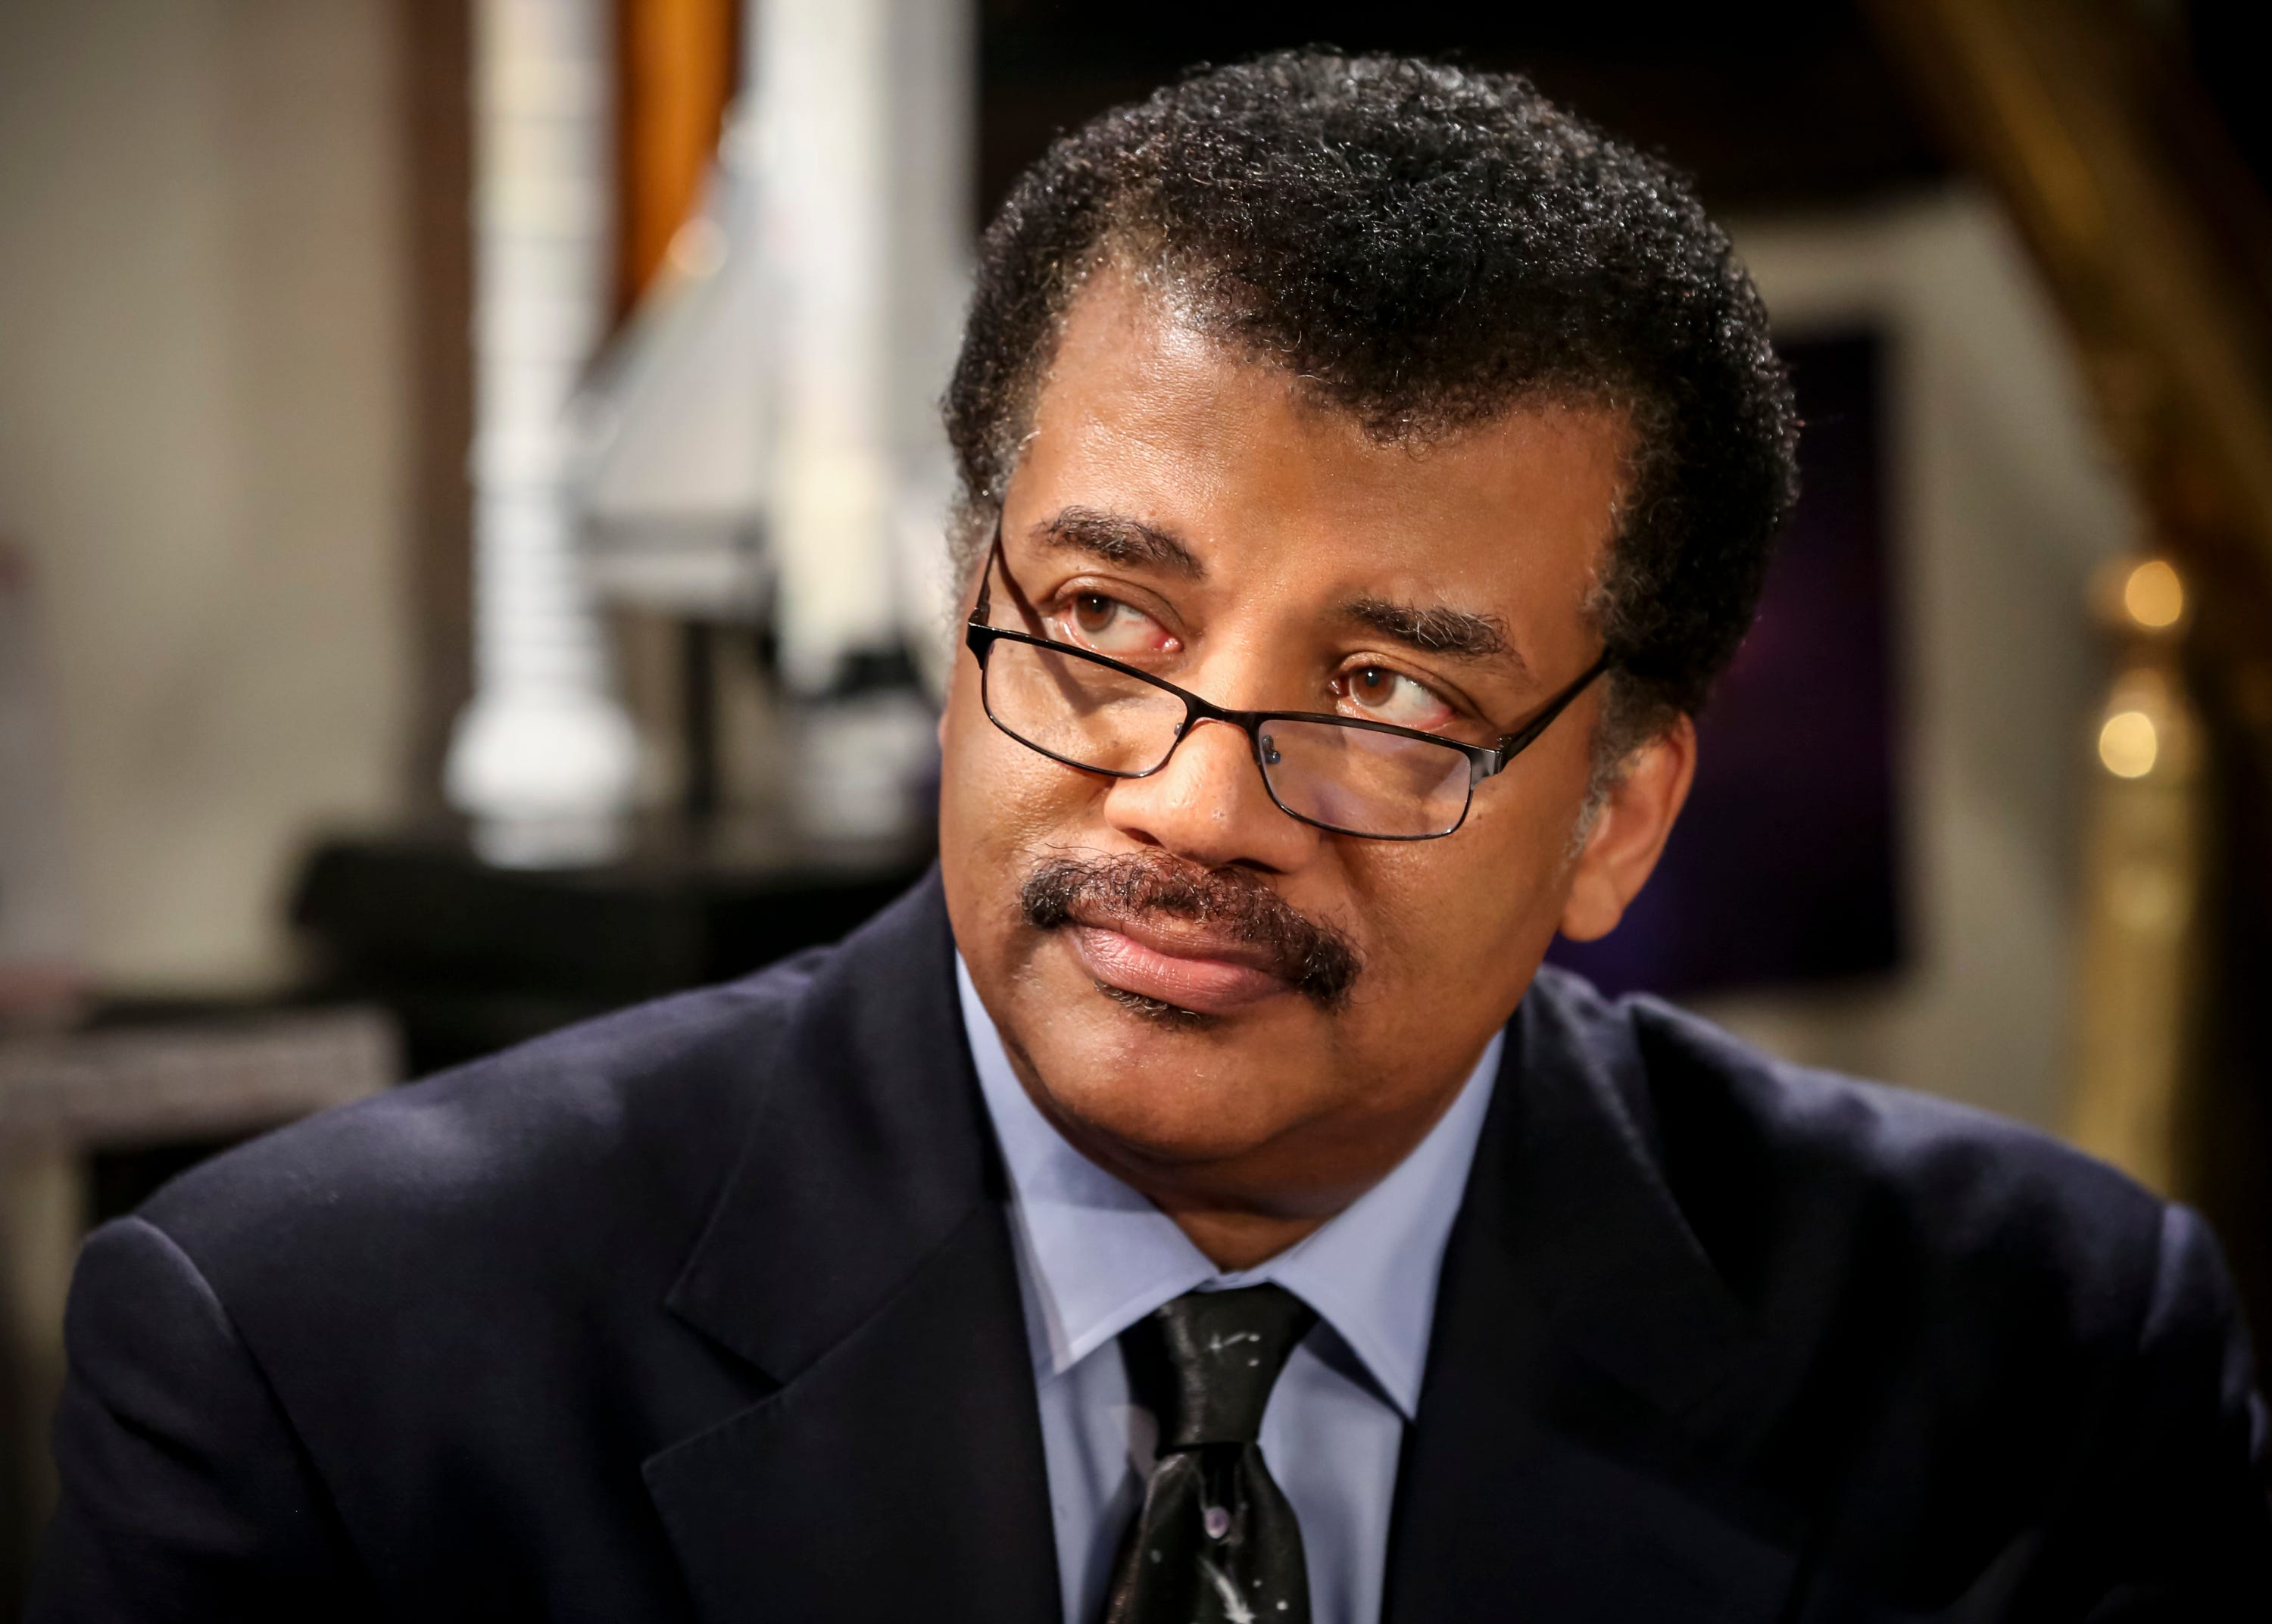 Neil deGrasse Tyson denies misconduct allegations, welcomes Fox/NatGeo investigation